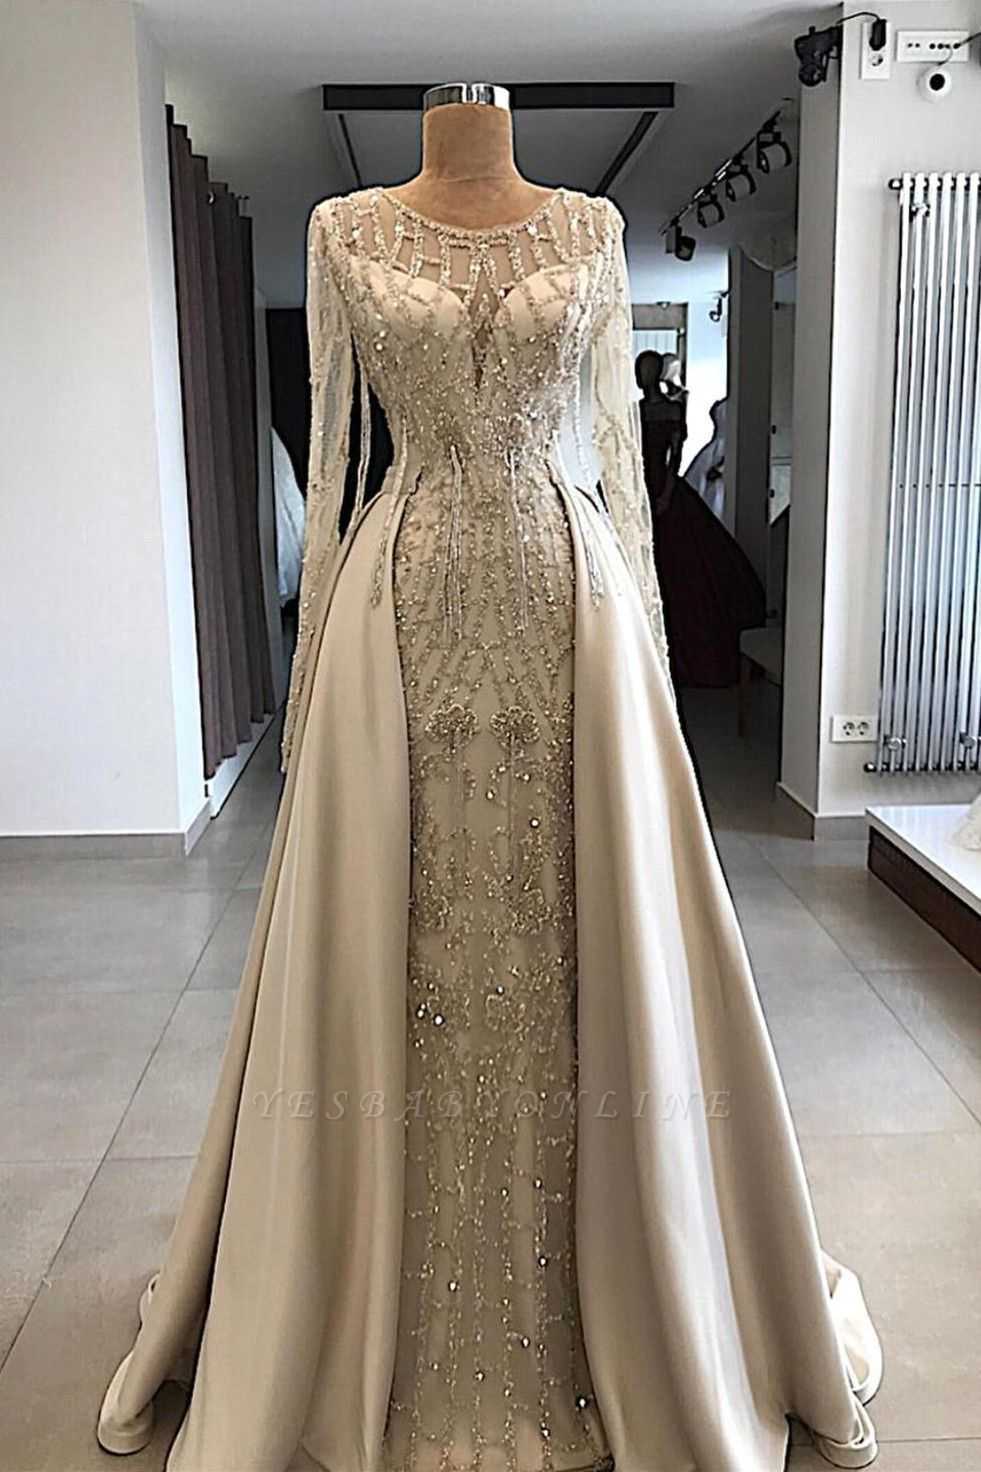 Gorgeous Jewel Long Sleeves Beaded Prom Gowns Long Sleeve Bridal Gown Sparkly Prom Dresses Champagne Prom Dress [ 1472 x 981 Pixel ]